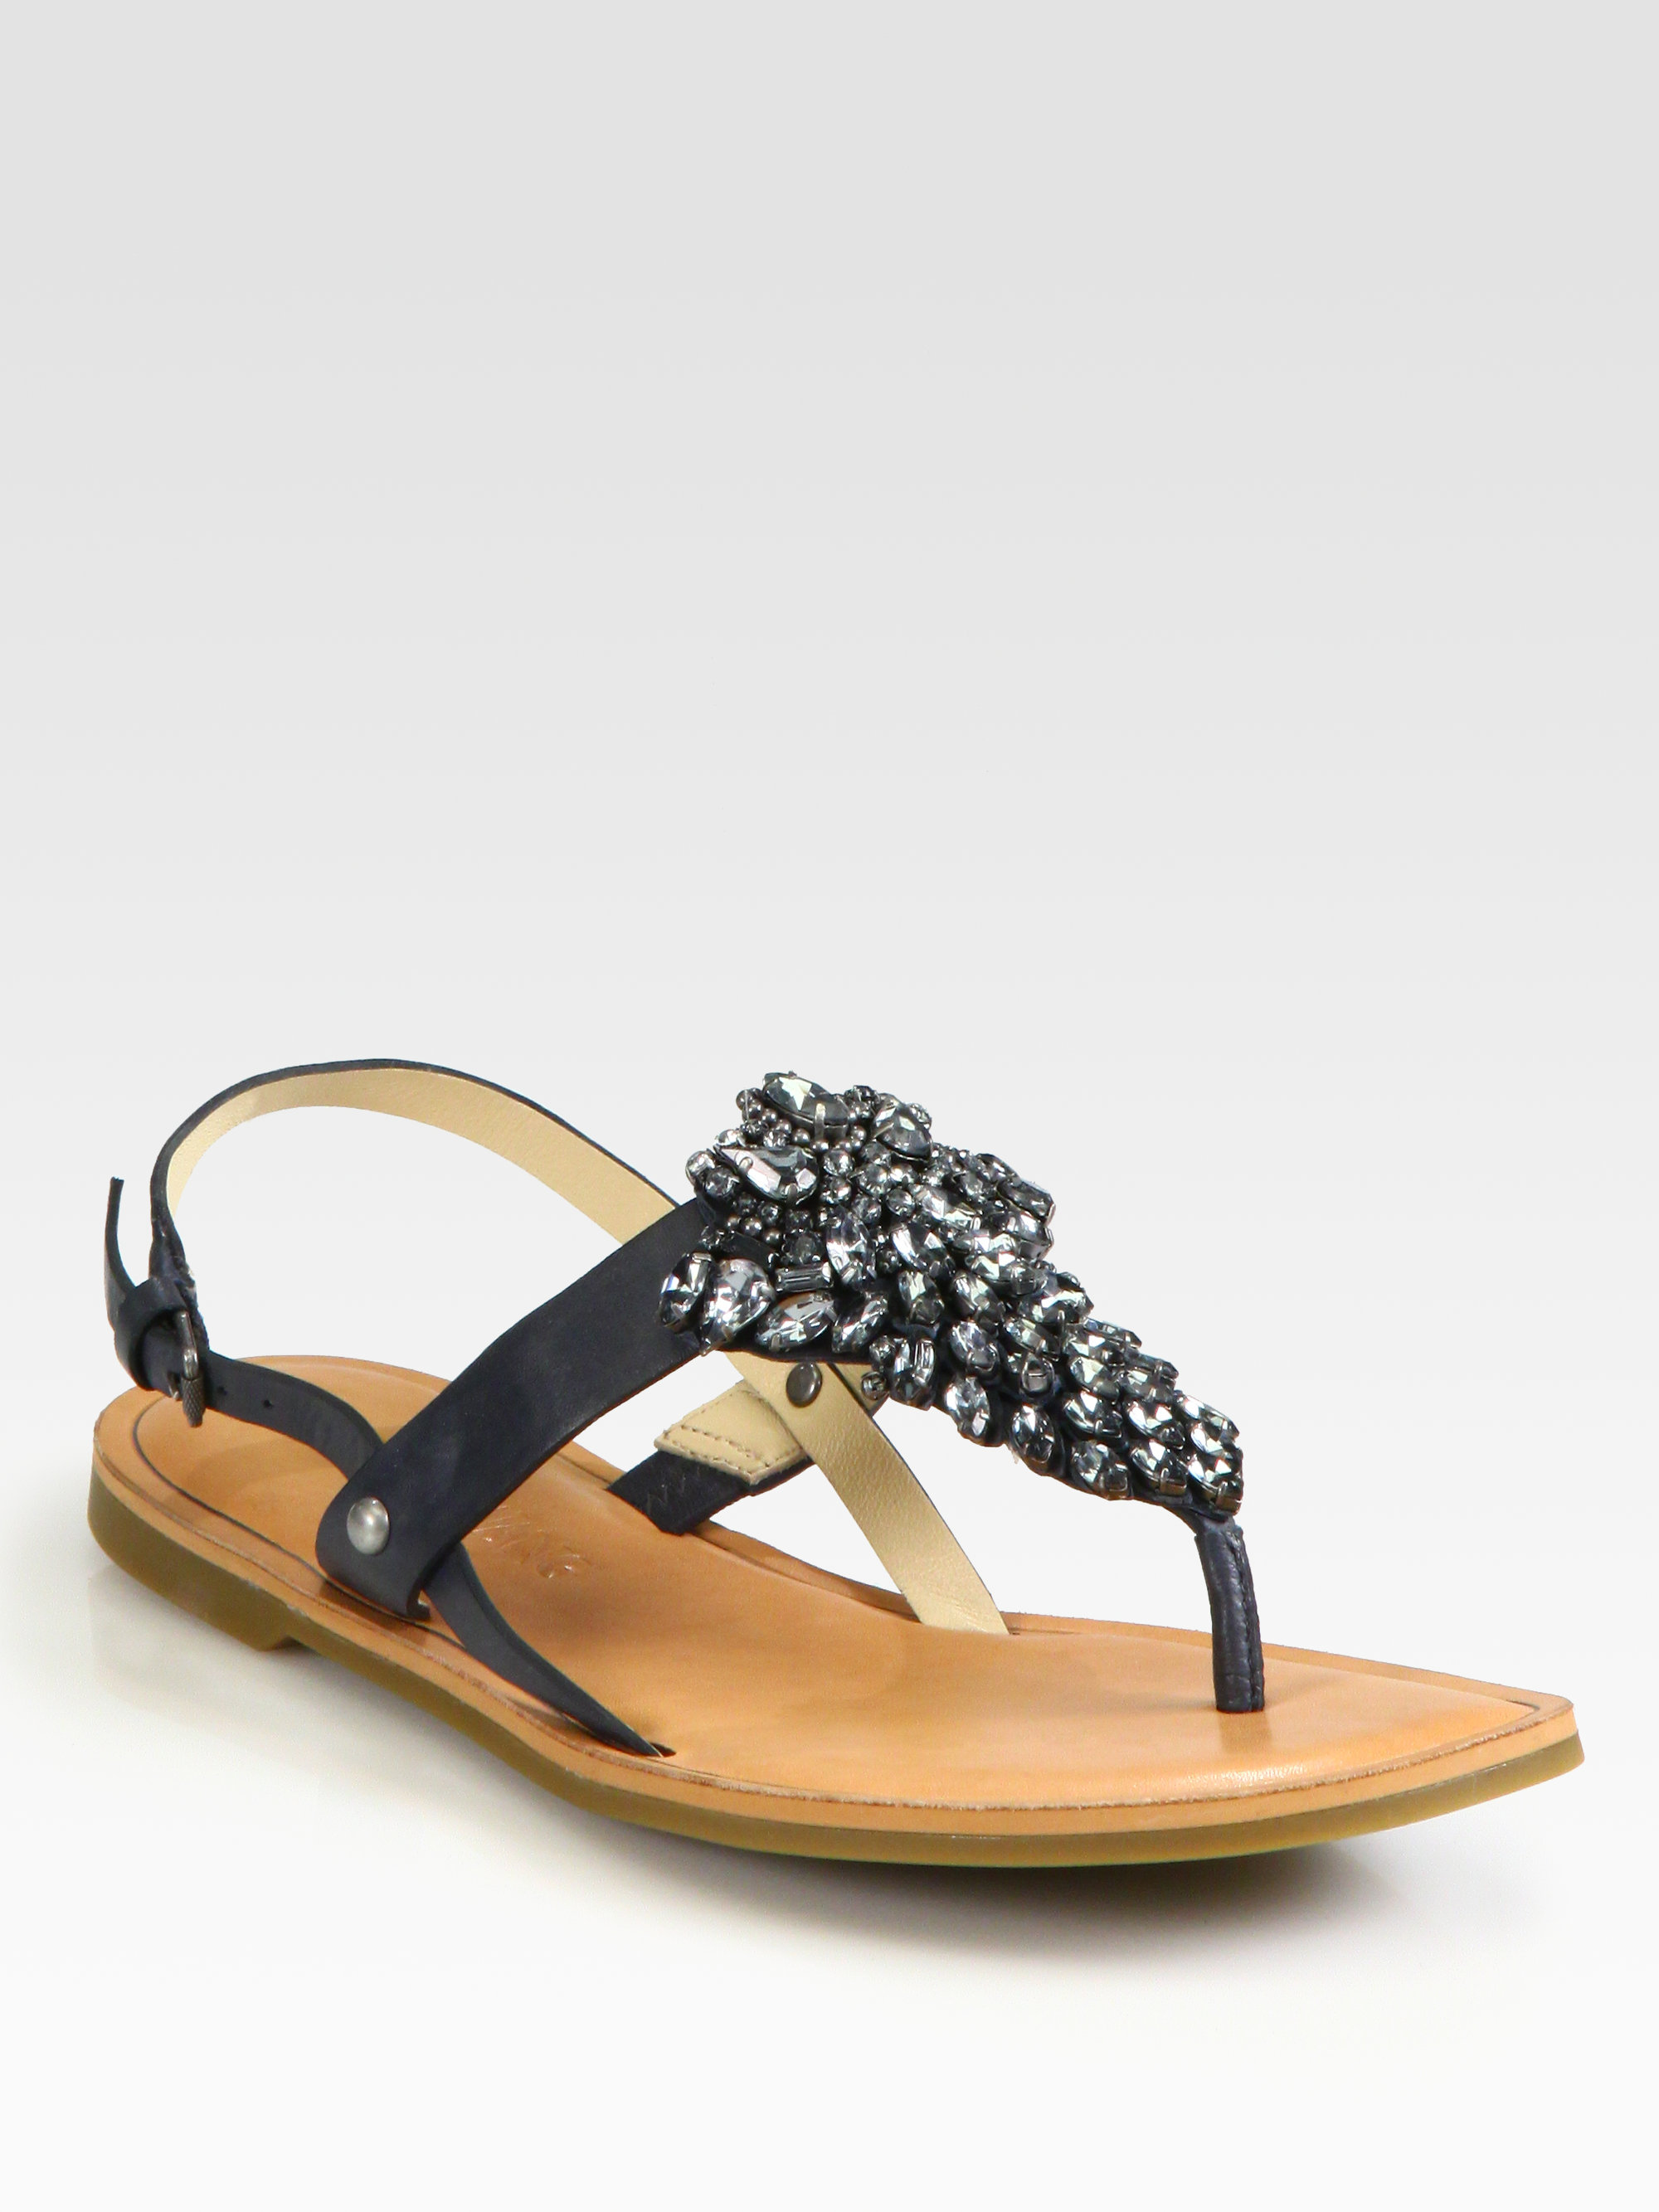 Vera Wang Lavender Avy Jeweled Leather Sandals In Navy